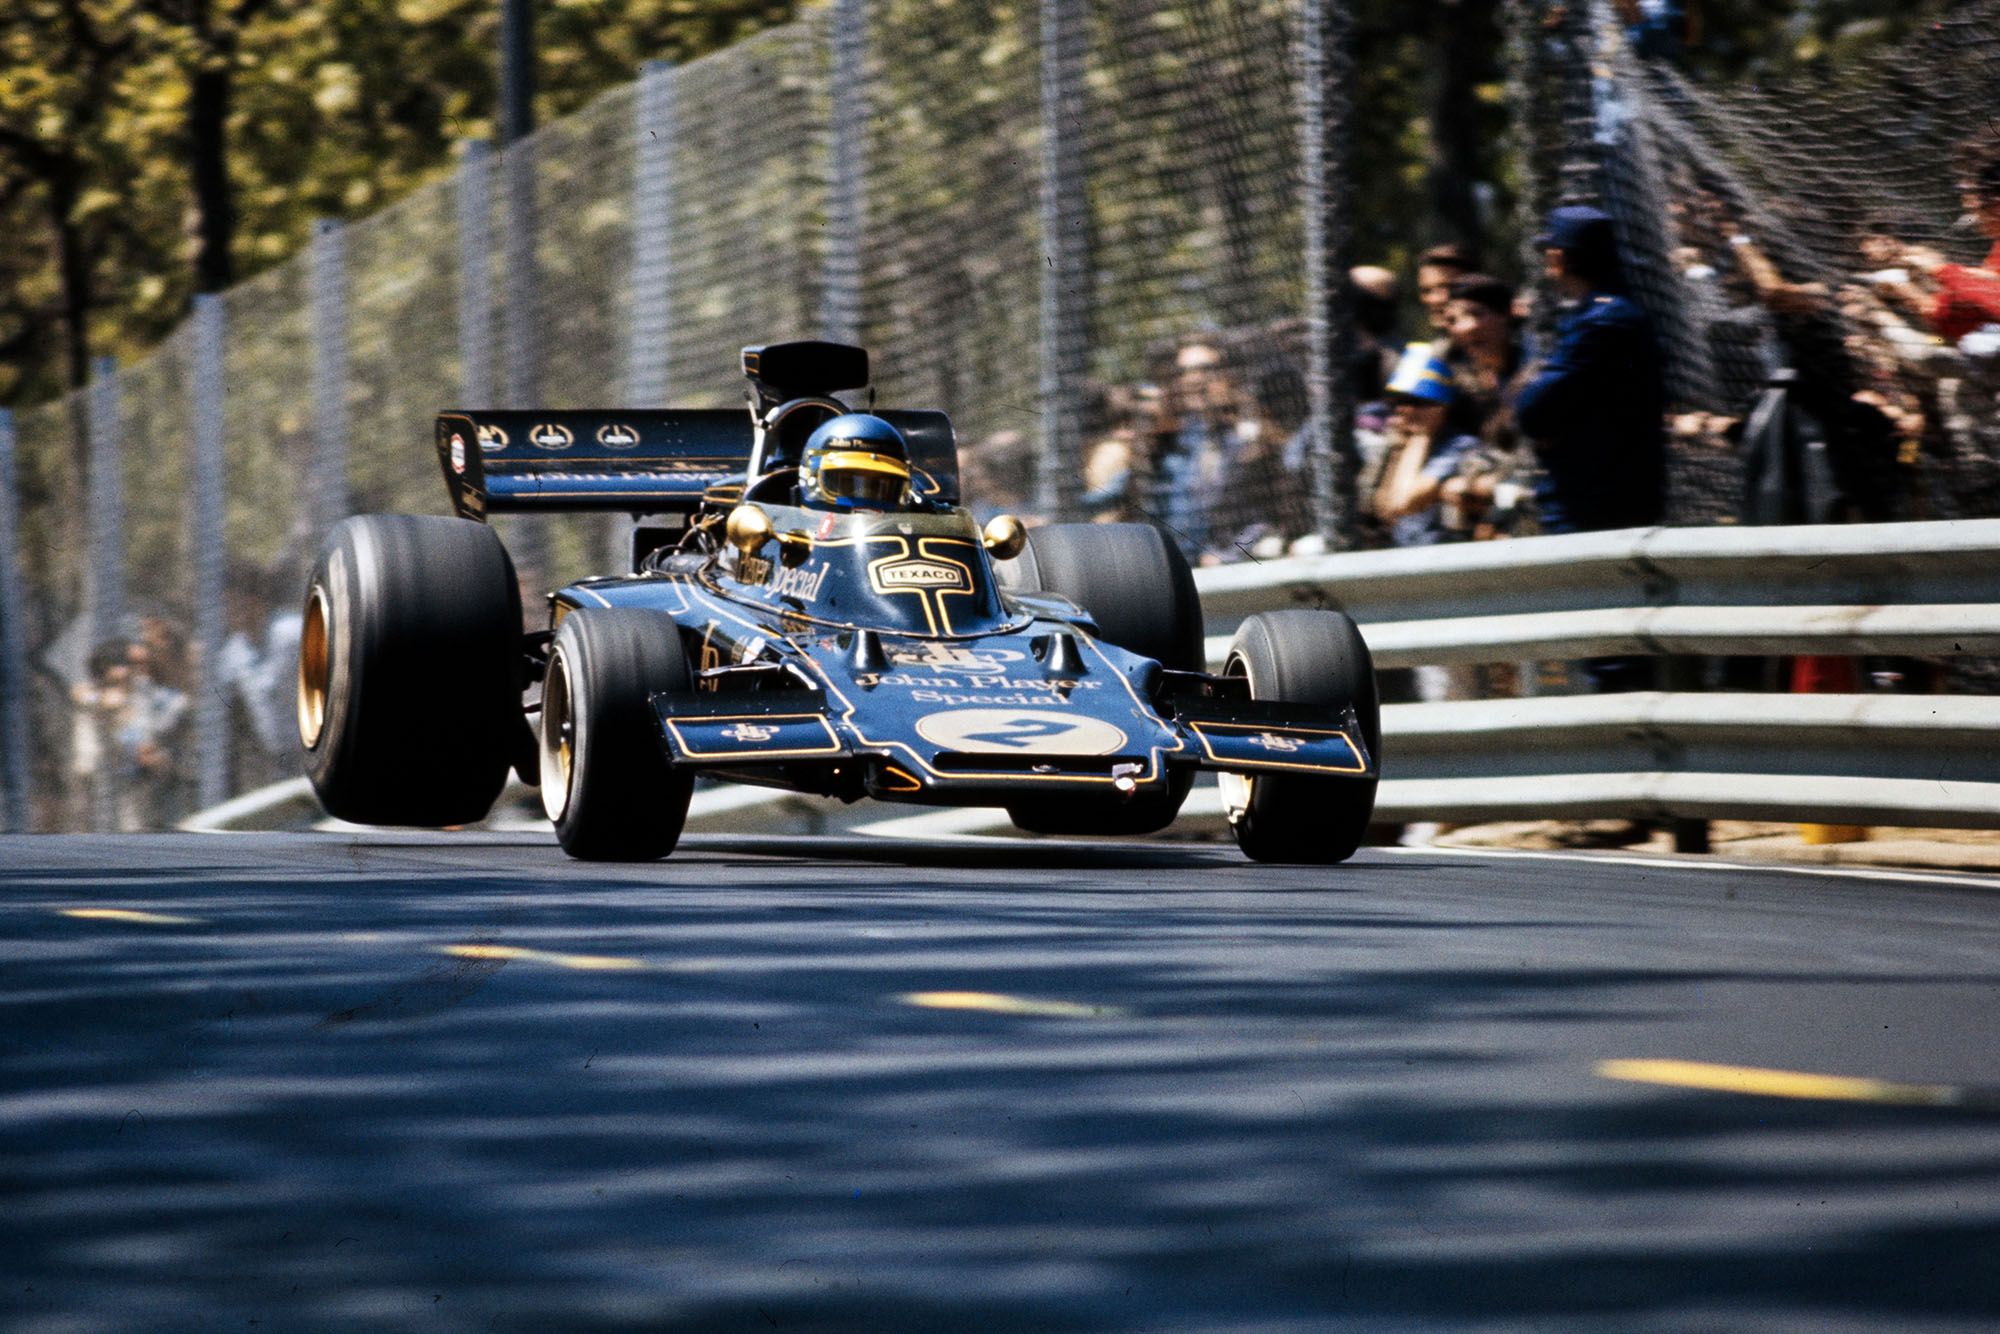 Ronnie Peterson driving for Lotus at the 1973 Spanish Grand Prix.